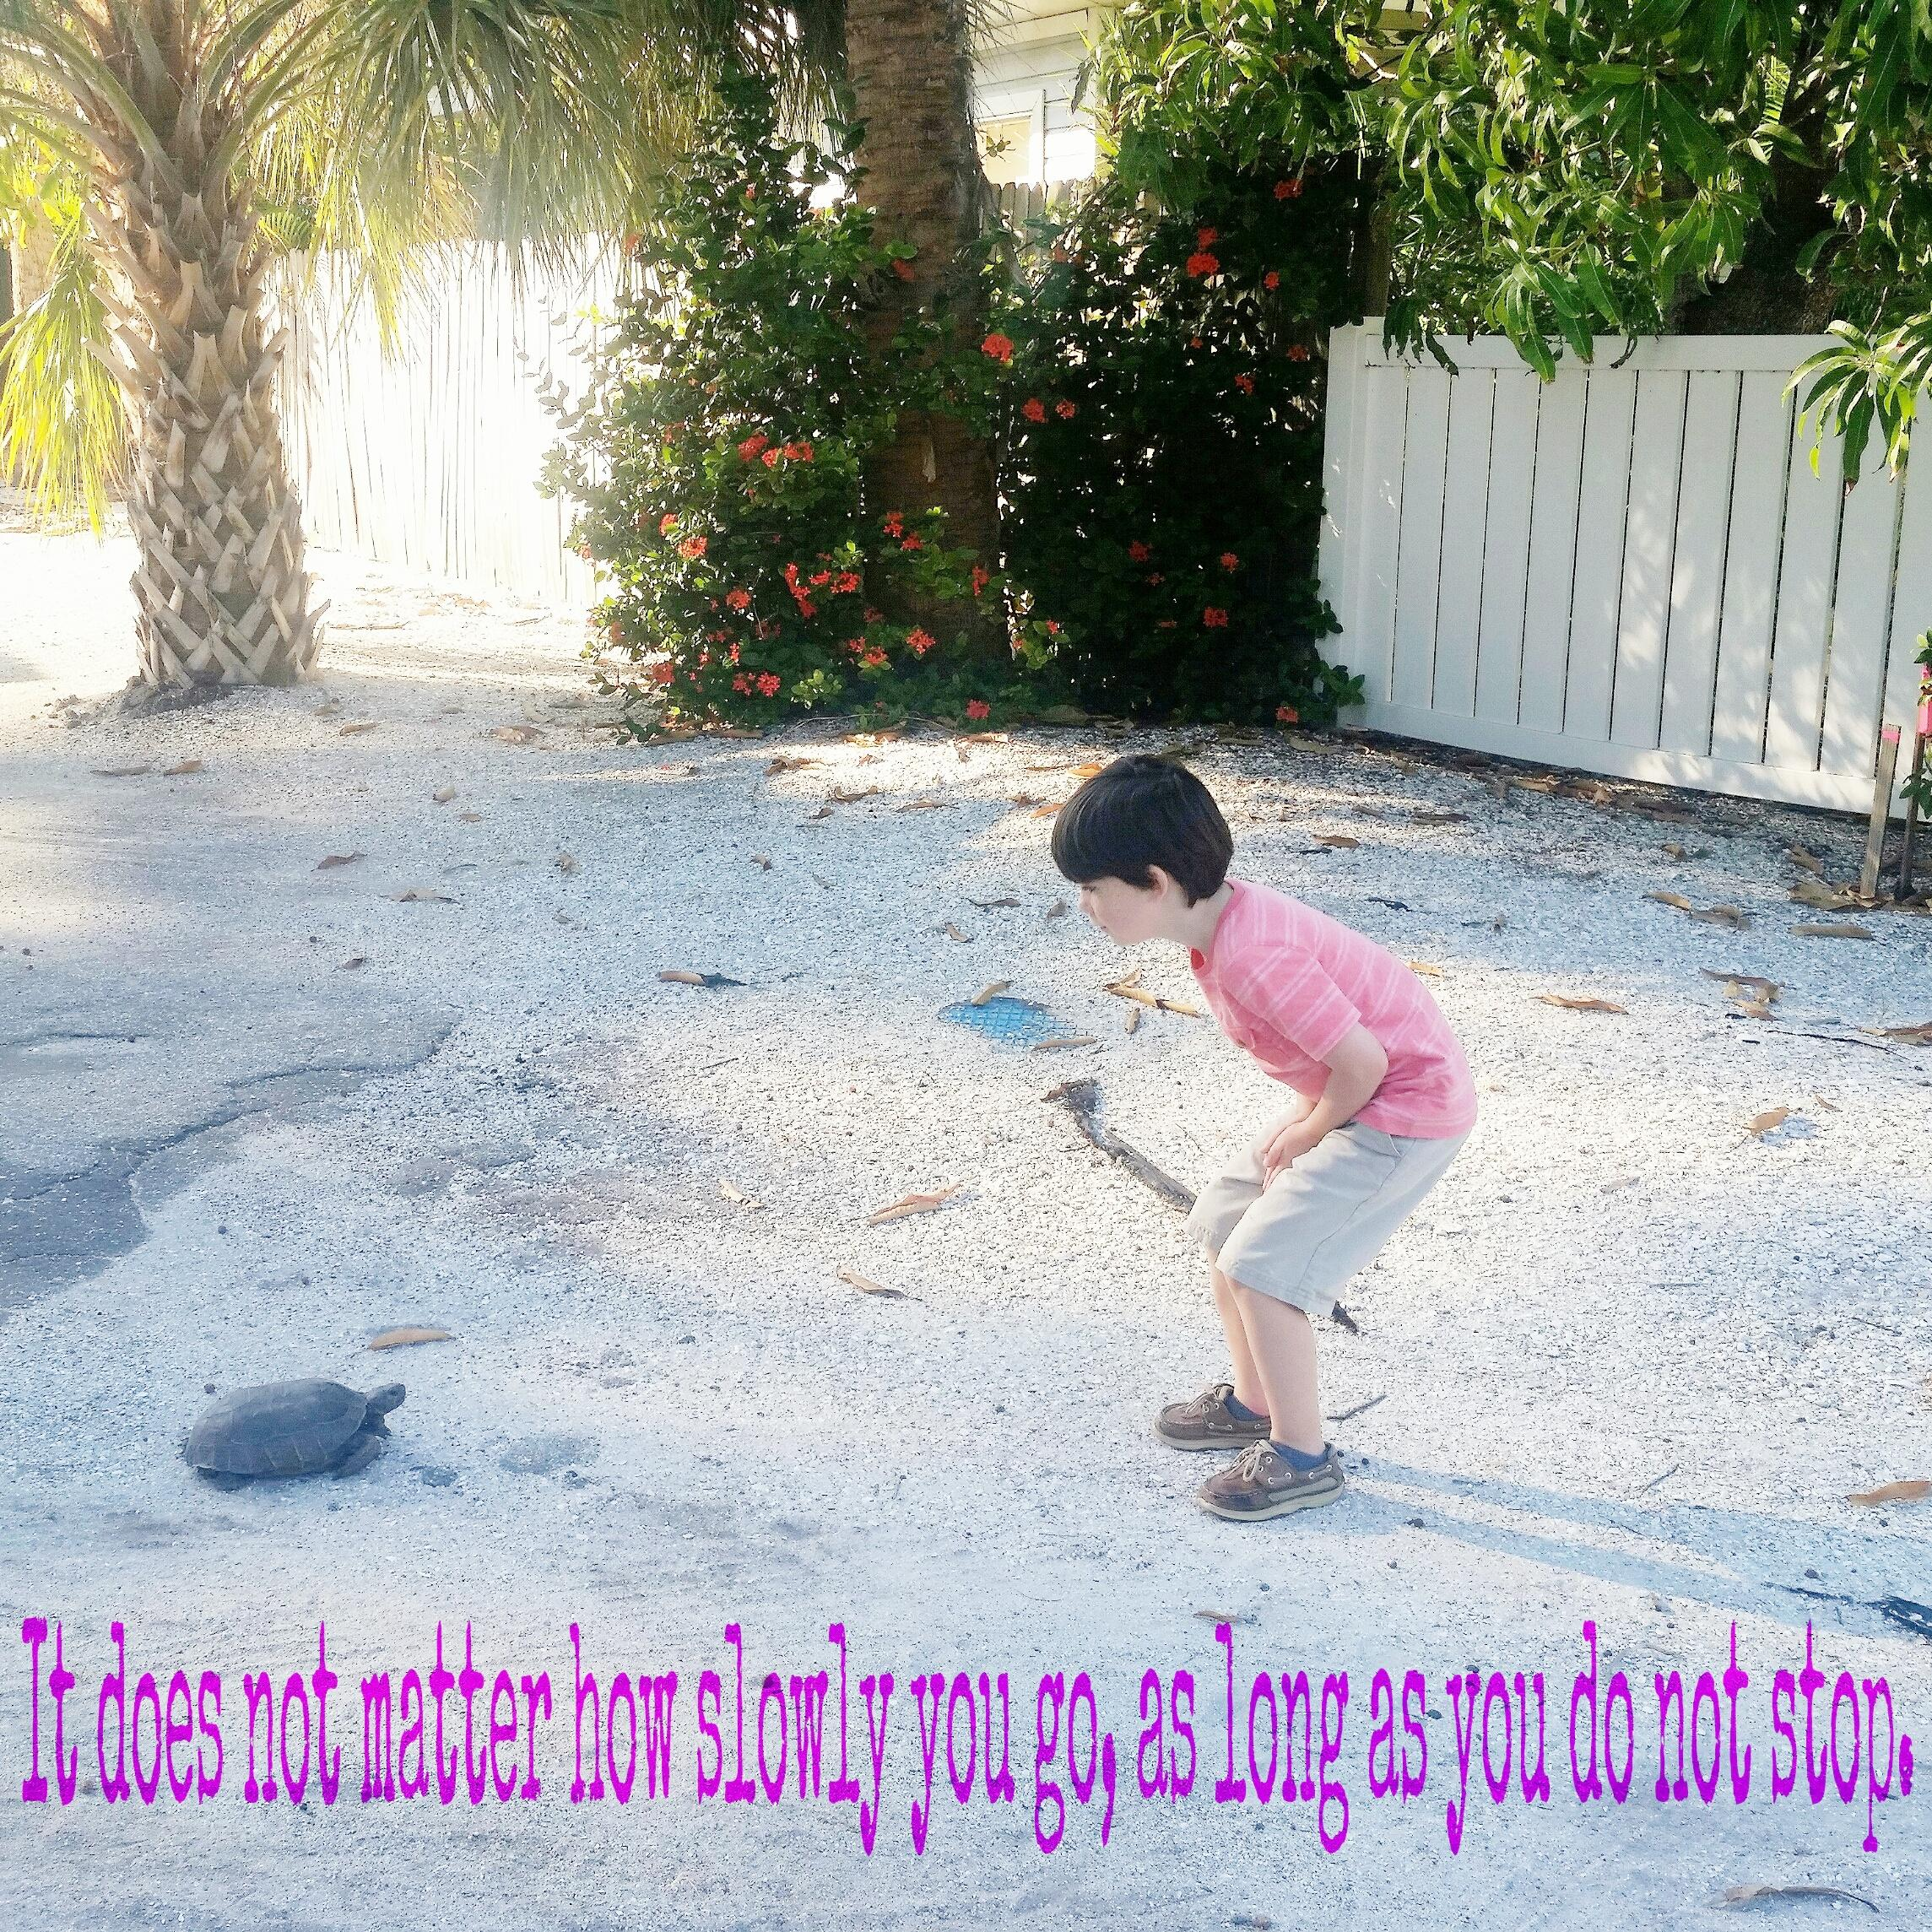 My son cheered on a turtle crossing the road, we can all use a little encouragement! [IMAGE]